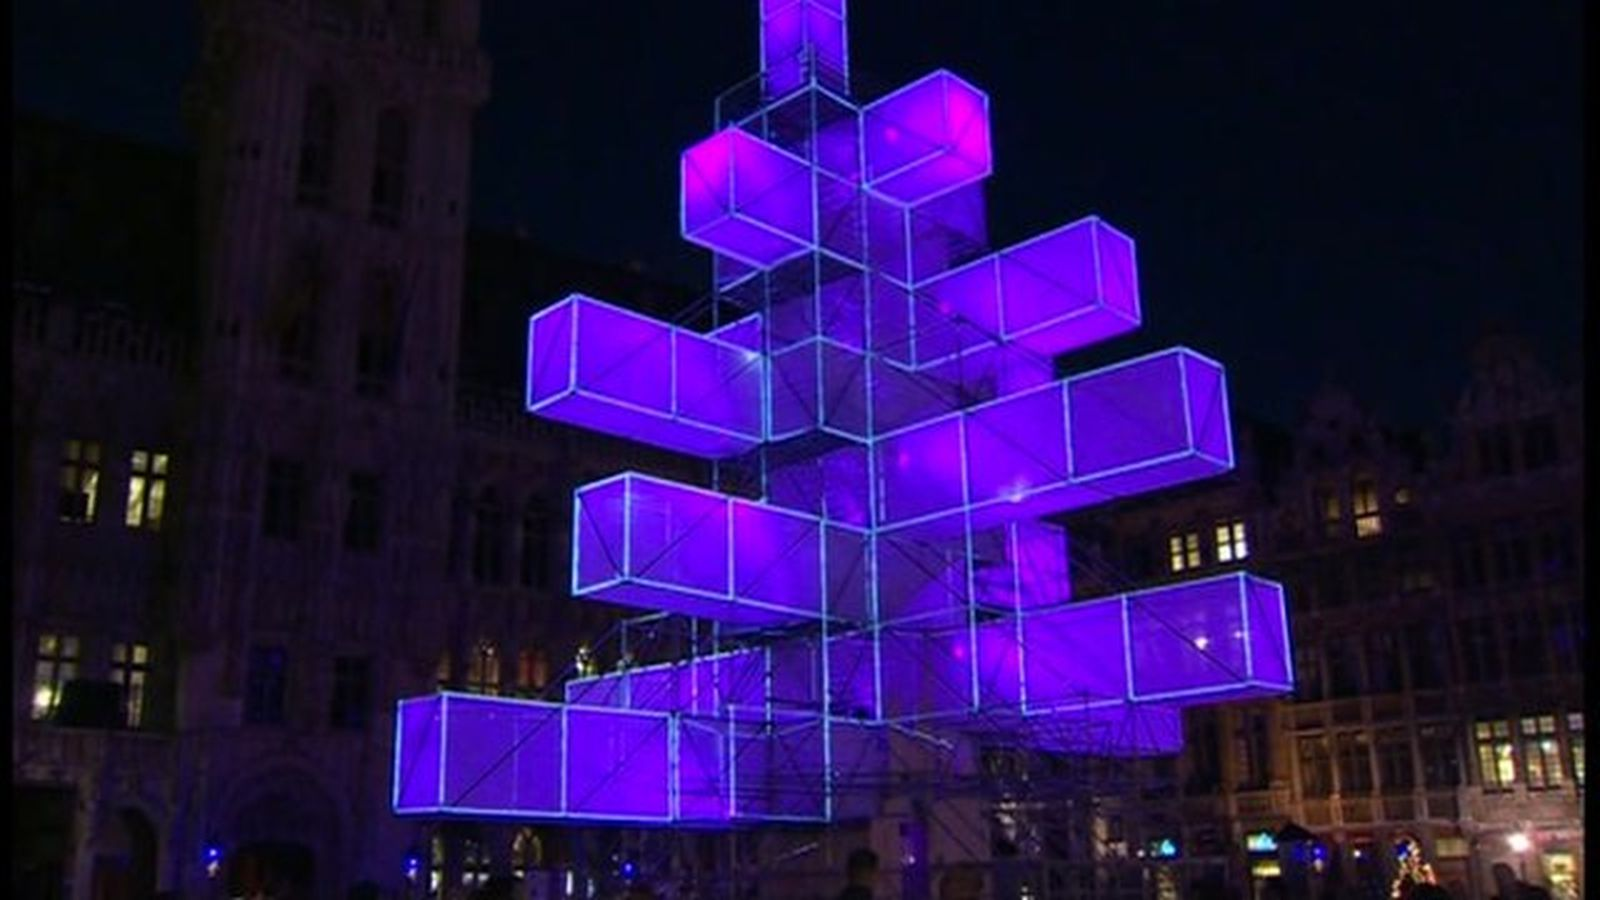 Abstract Christmas Tree Electrifies Brussels With